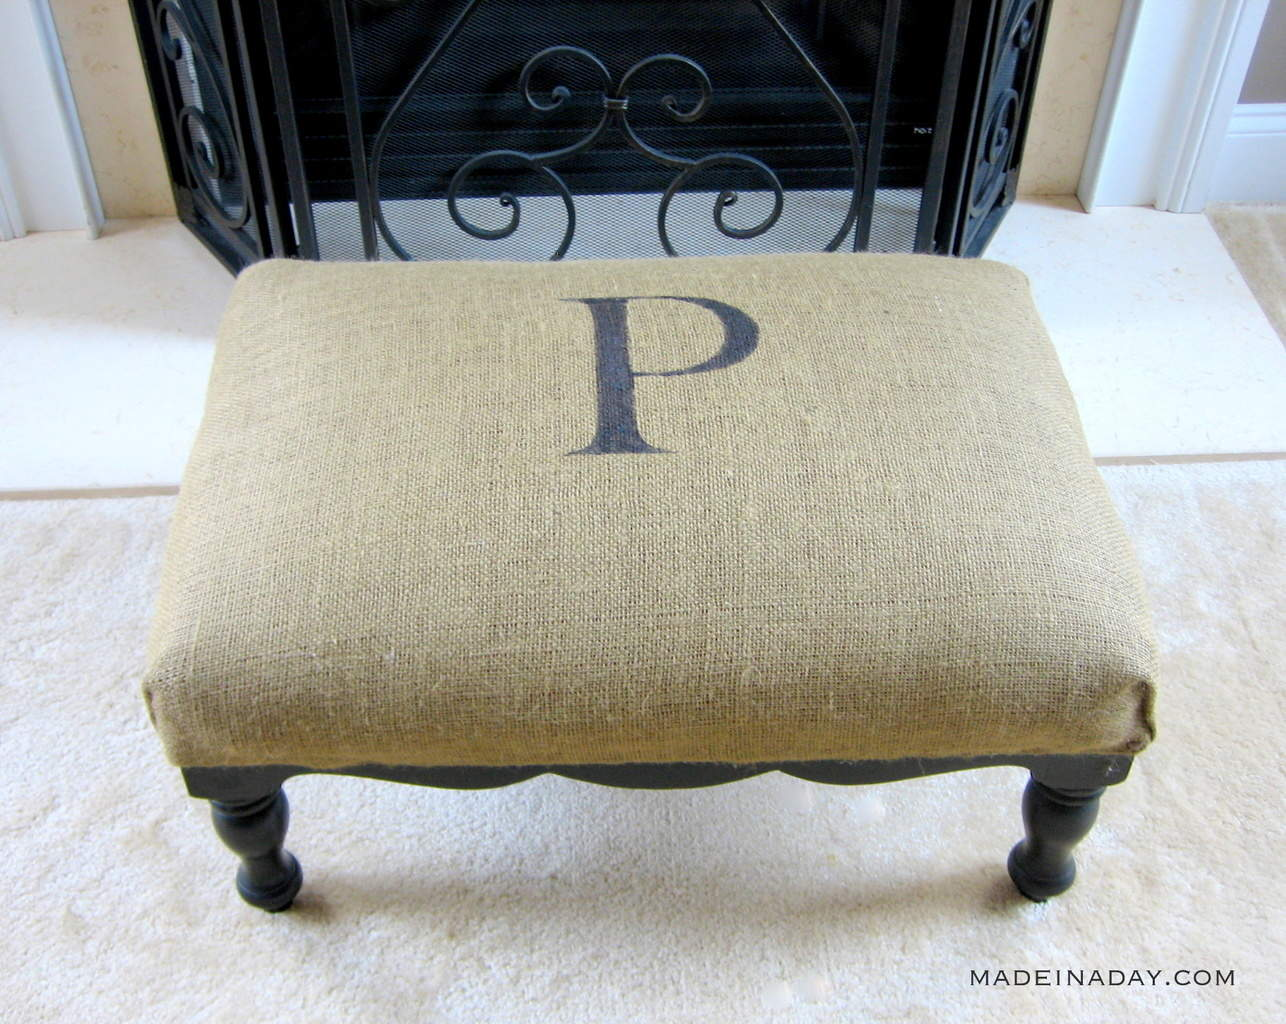 DIY Upholstery Monogrammed Burlap Ottoman tutorial on madeinaday.com